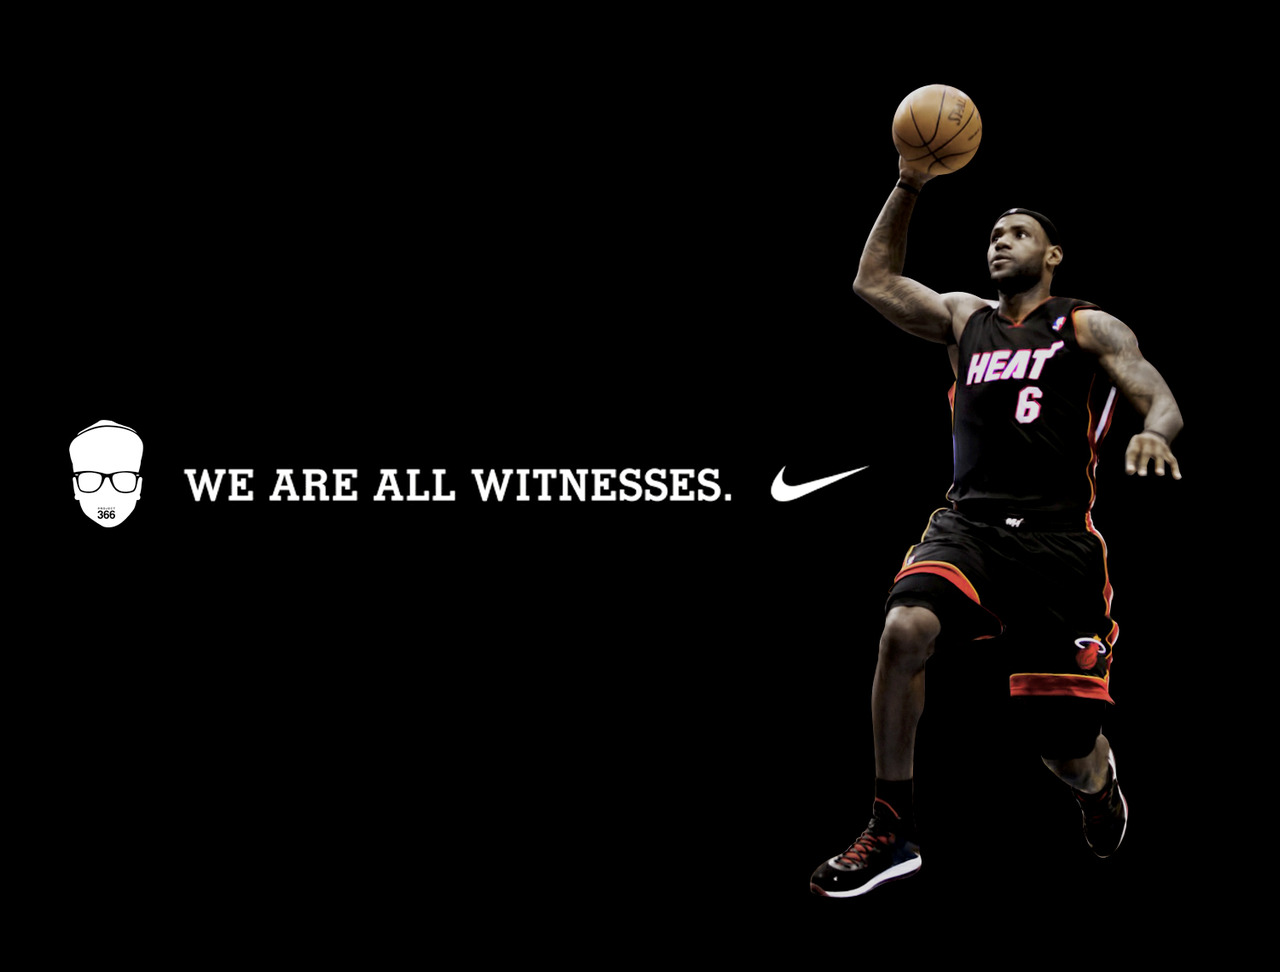 Lebron James We Are All Witnesses We are all witnesses of what 1280x972